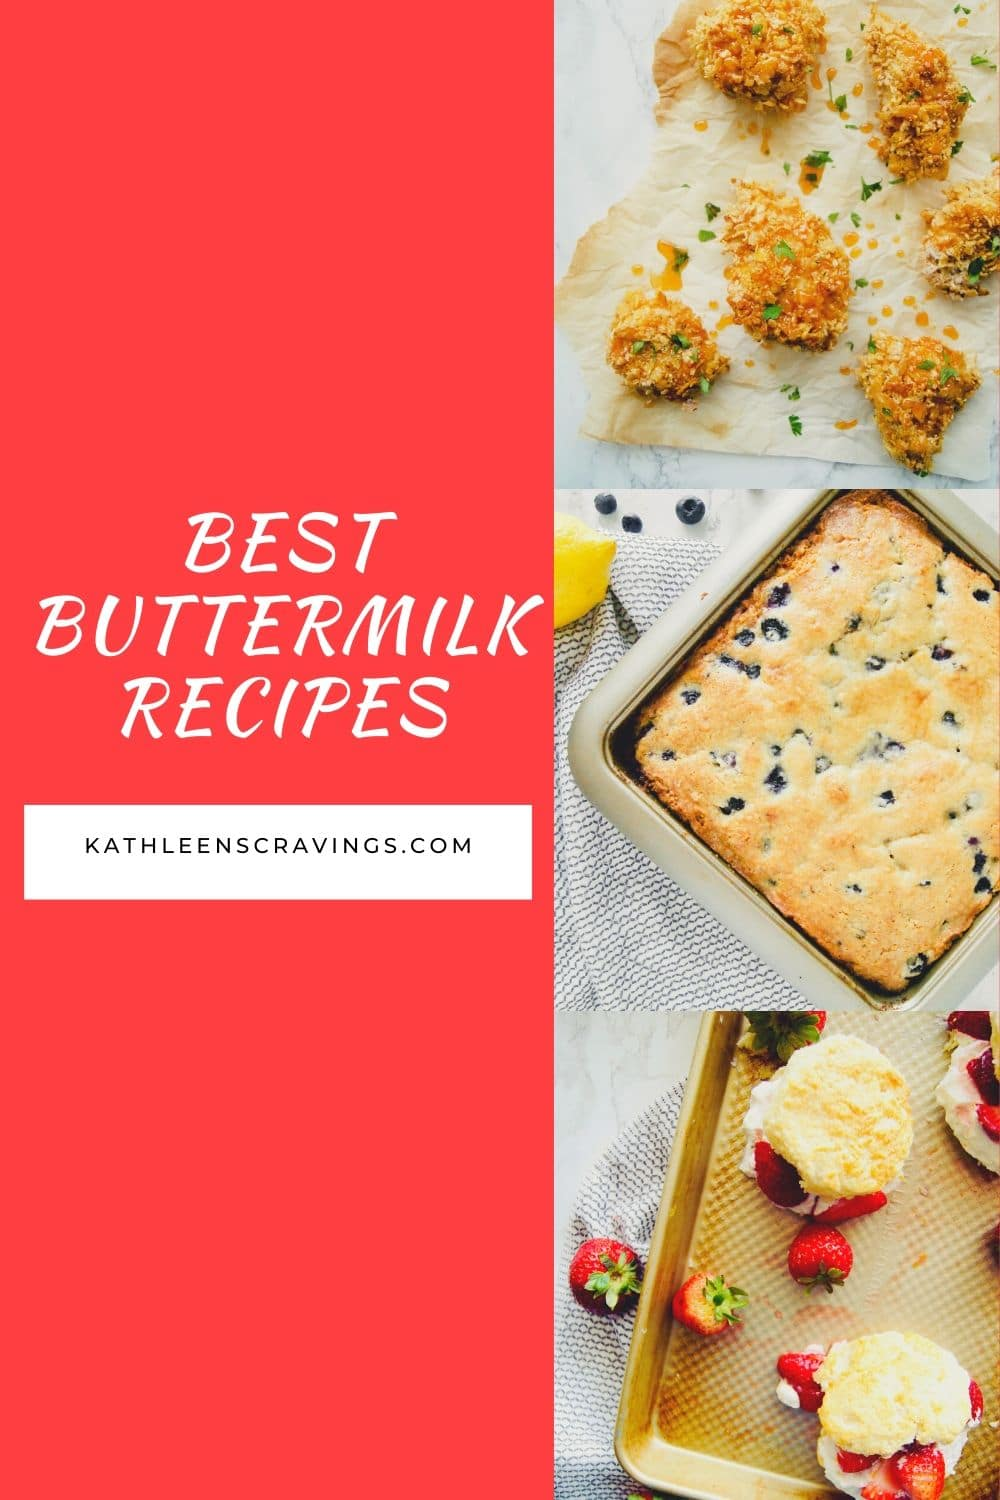 Looking for a recipe to use up the buttermilk in your fridge? What is buttermilk and how can we use it? The best recipes using buttermilk. KathleensCravings.com #buttermilk #buttermilkrecipes #easyrecipes #diybuttermilk